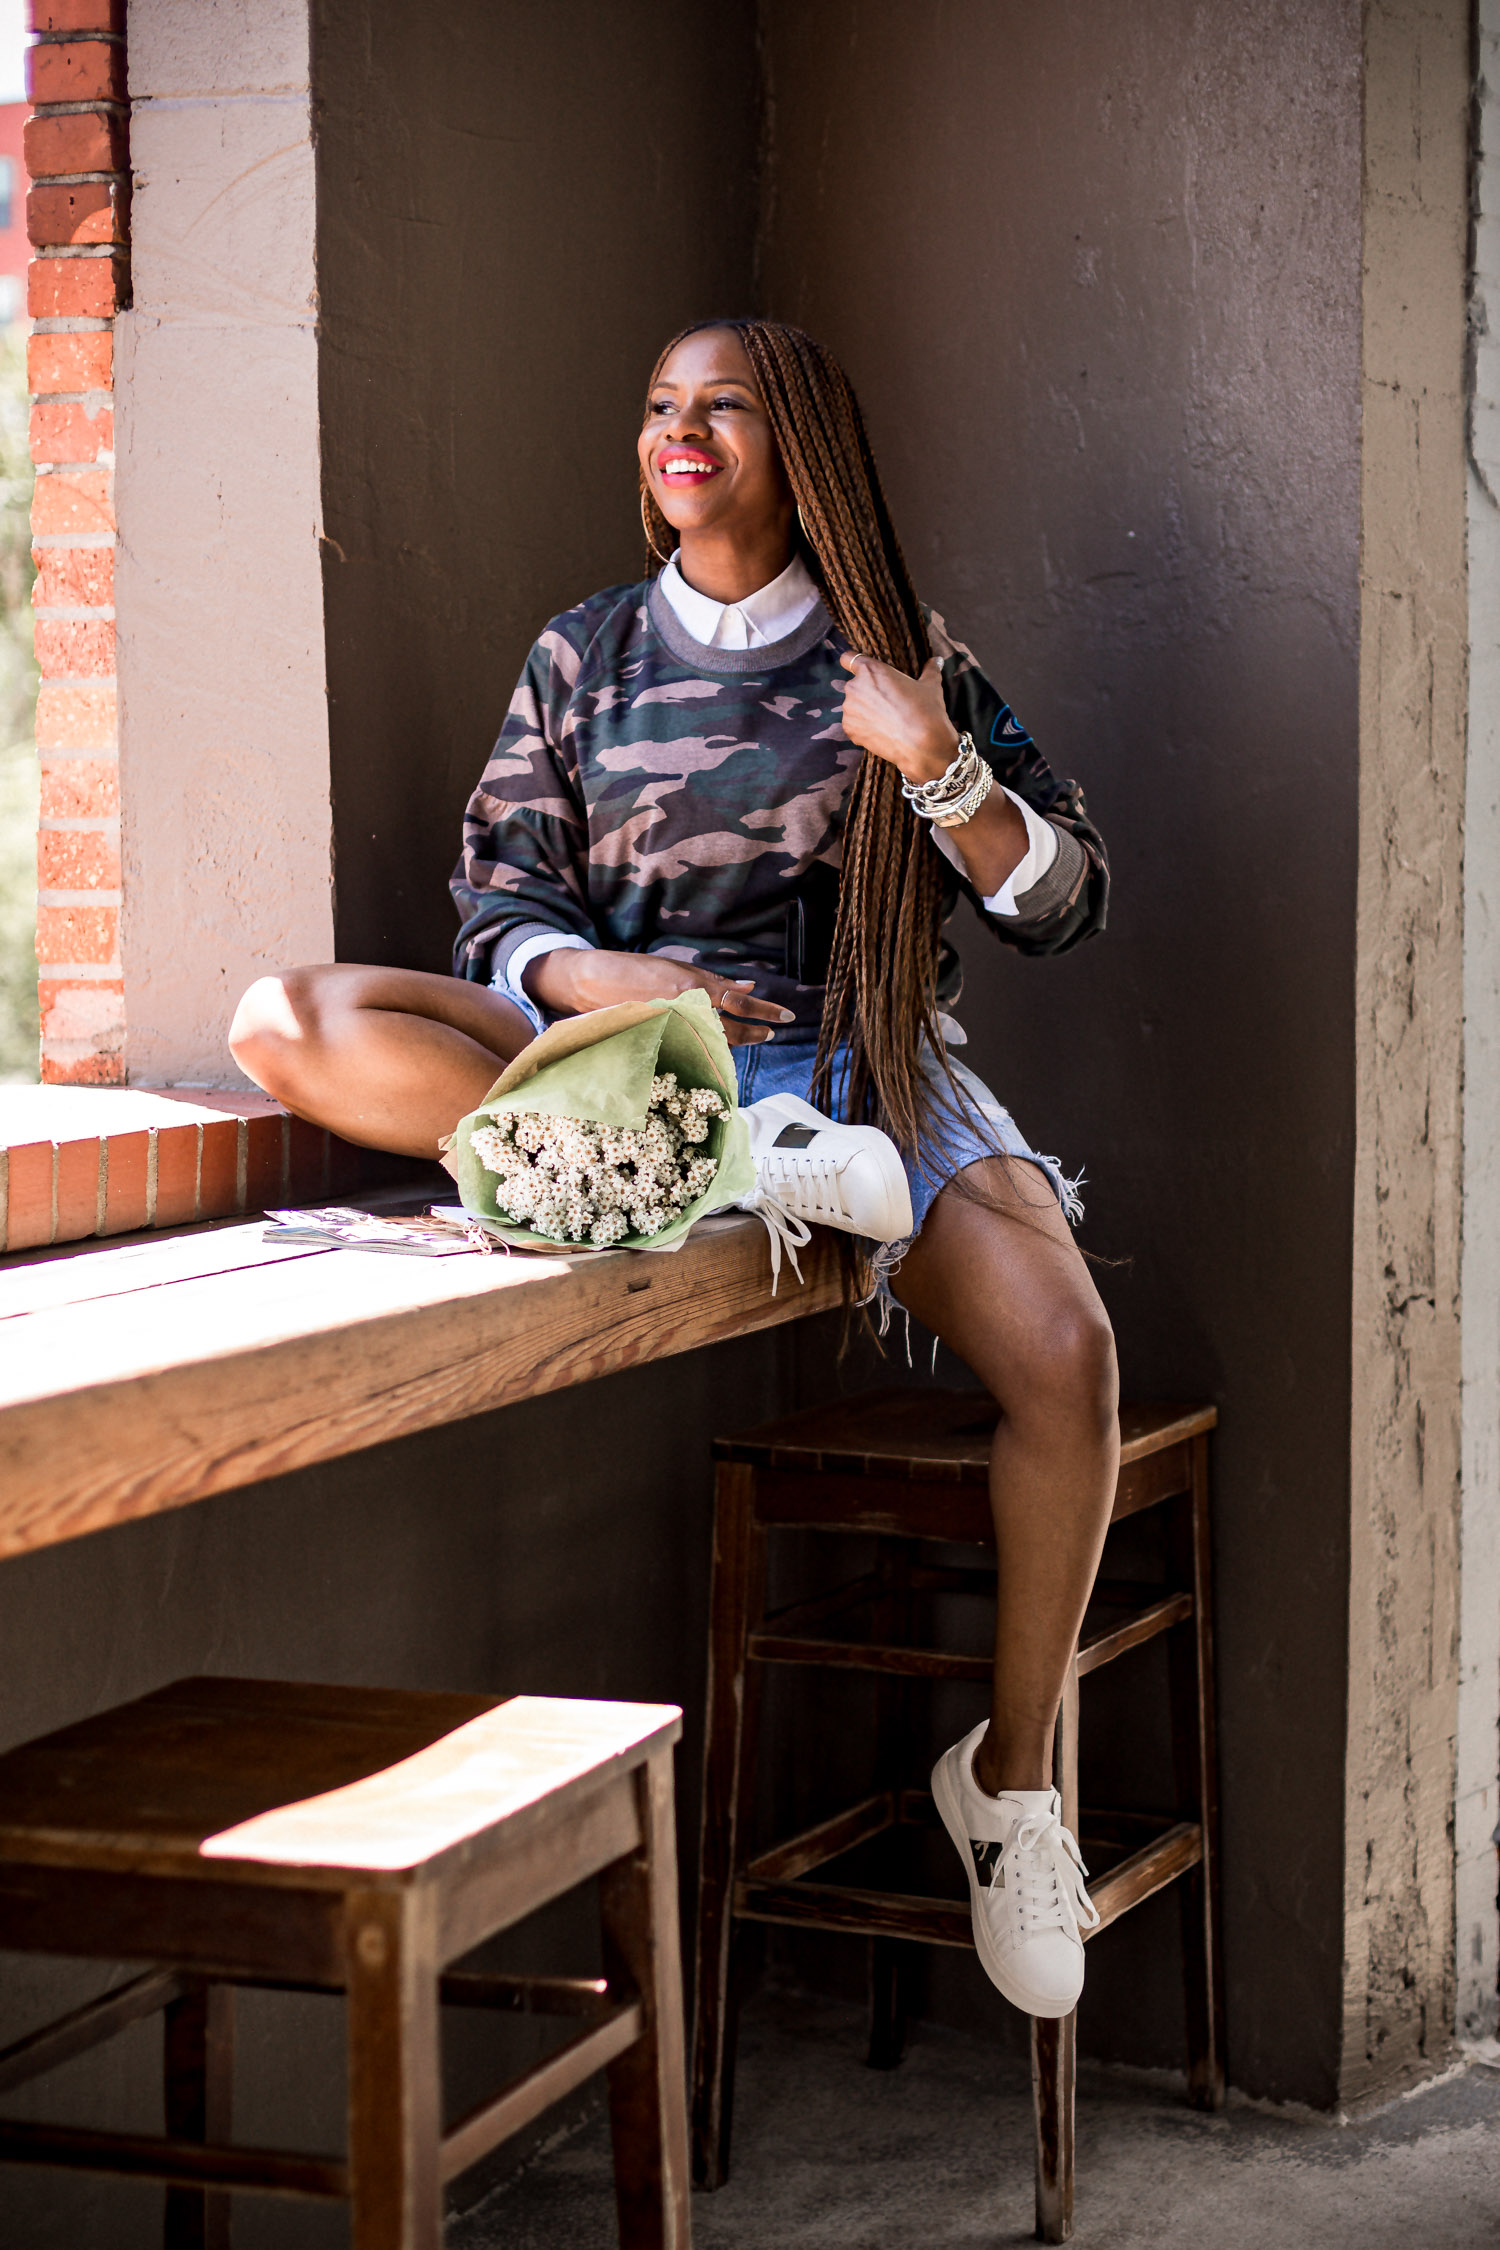 Atlanta fashion and lifestyle blogger monica awe-etuk wearing walmart camouflage sweatshirt, white shirt, denim biker shorts, white sneakers with camouflage details, jacquemus belt bag, long hair, long braids, agolde denim shorts, fall prints